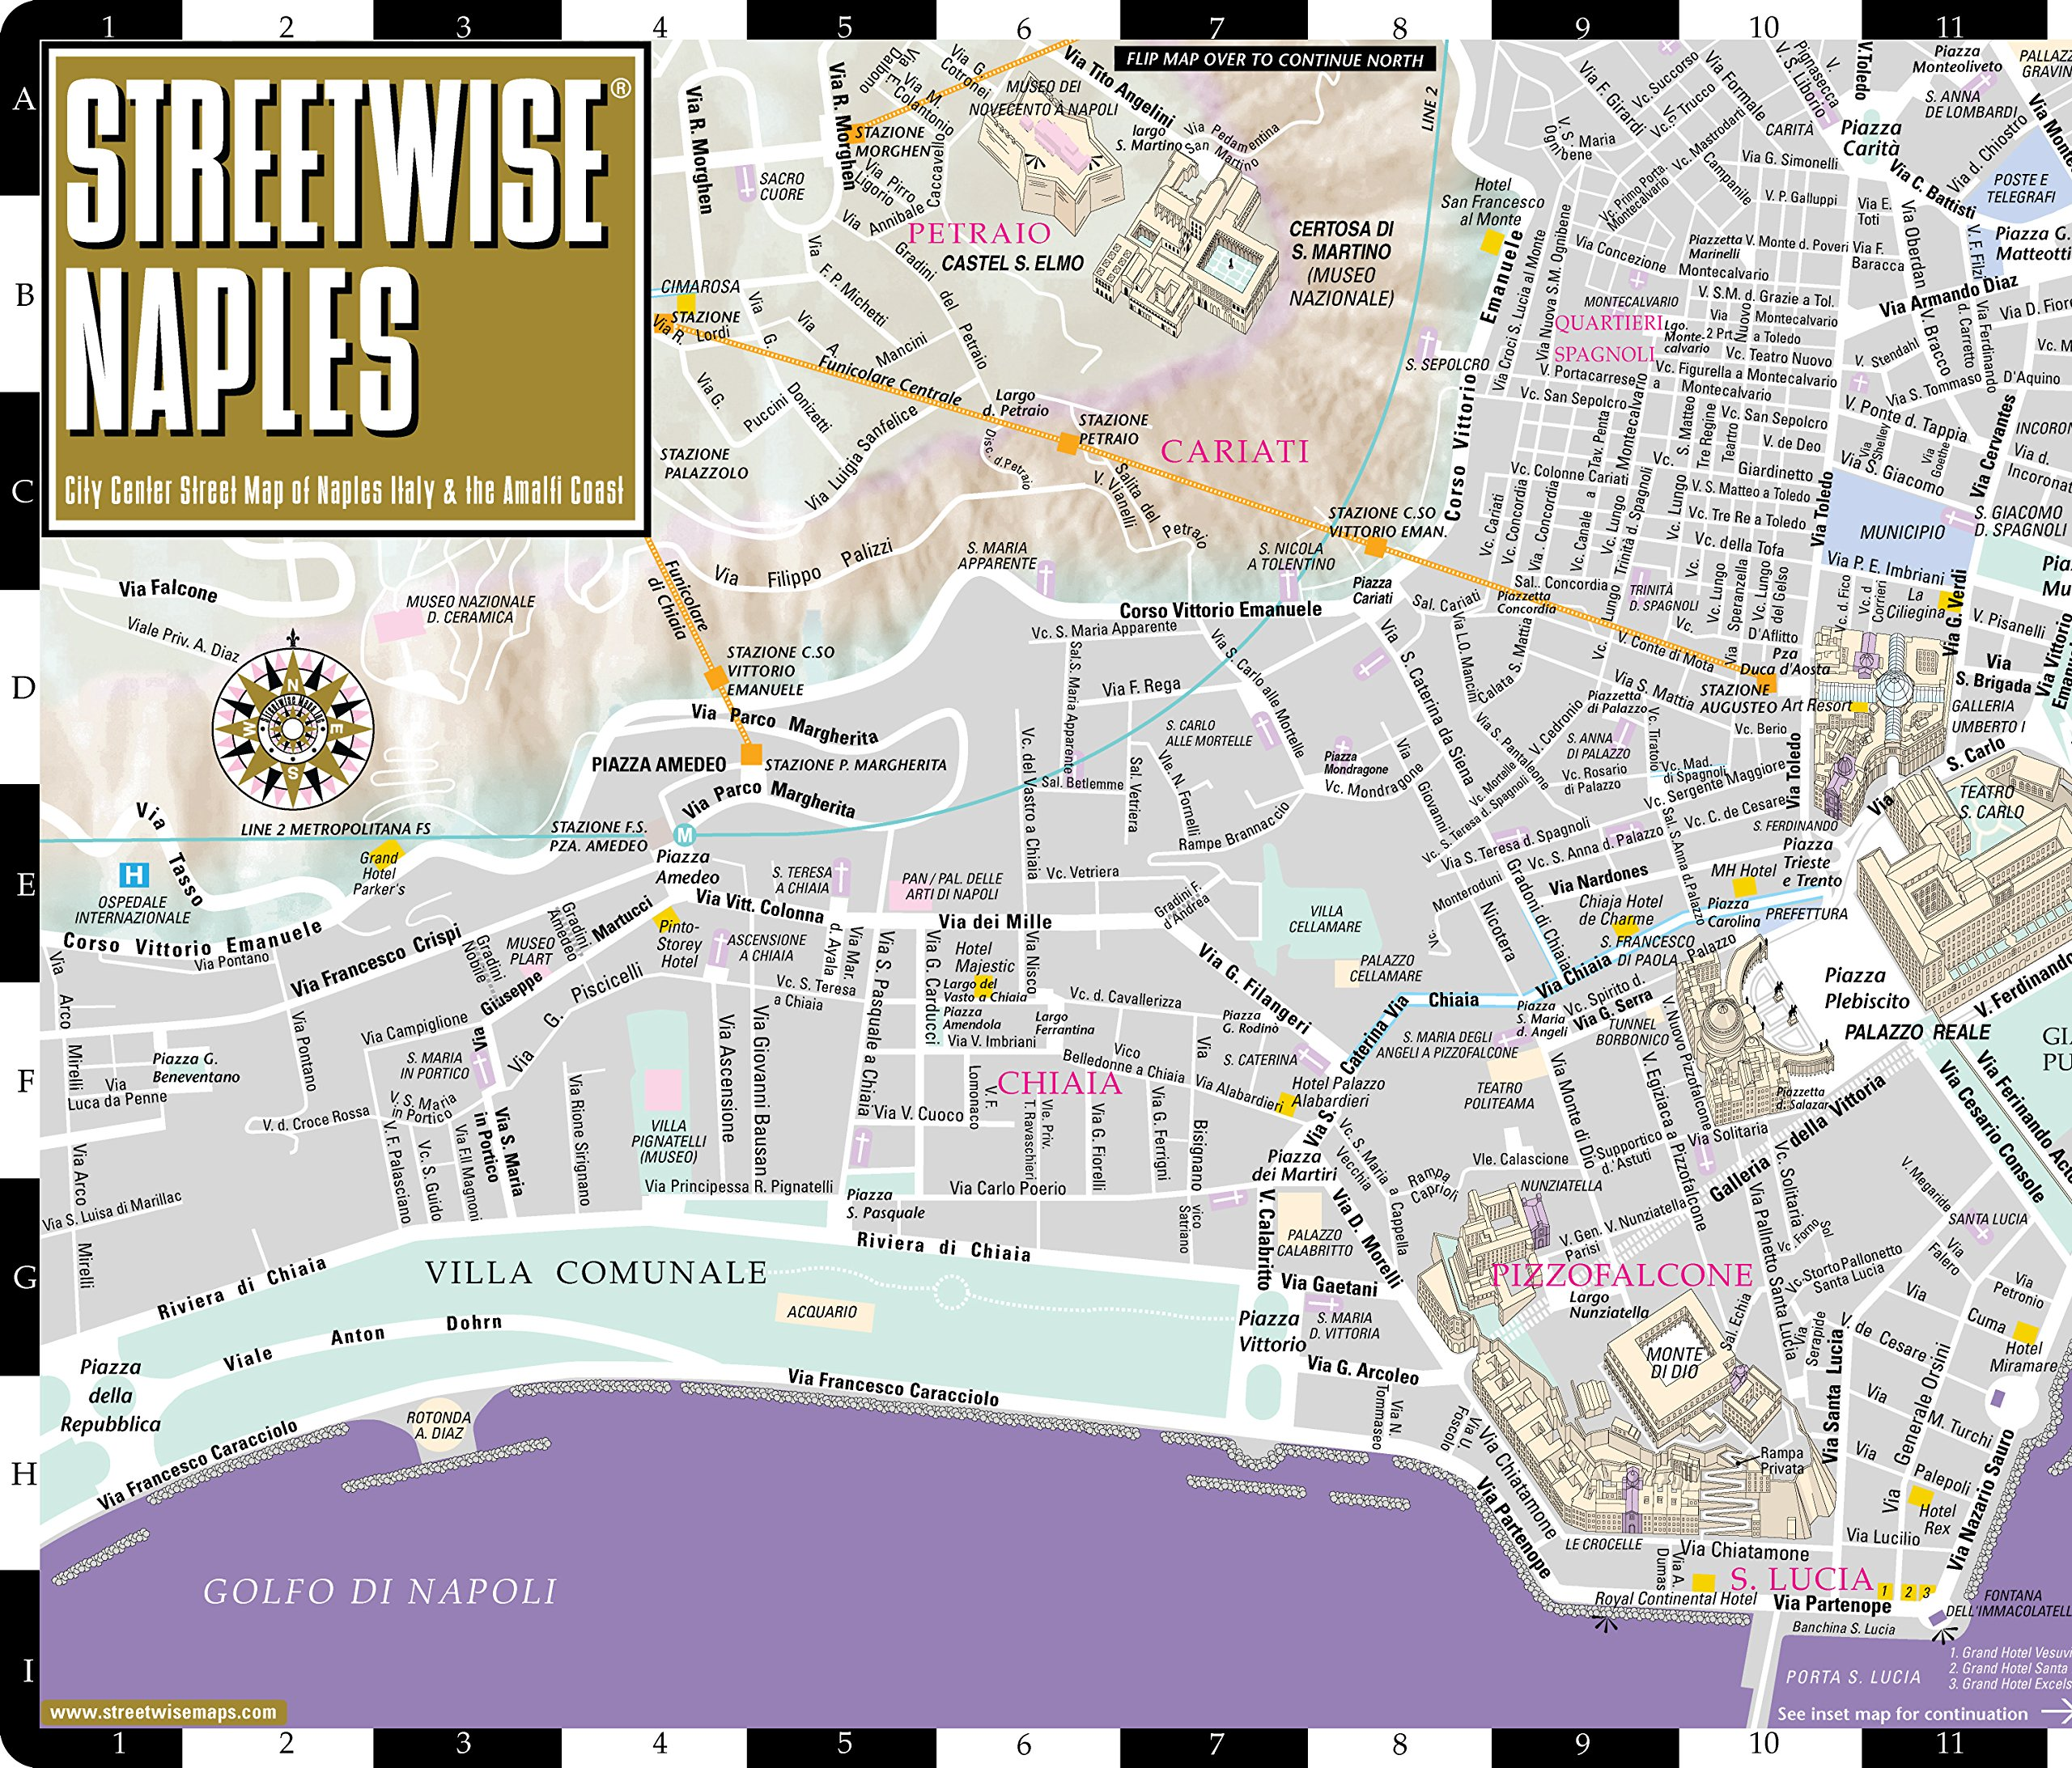 streetwise naples map  laminated city center street map of naples italy folding pocket size travel map with metro lines  stations streetwise maps. streetwise naples map  laminated city center street map of naples